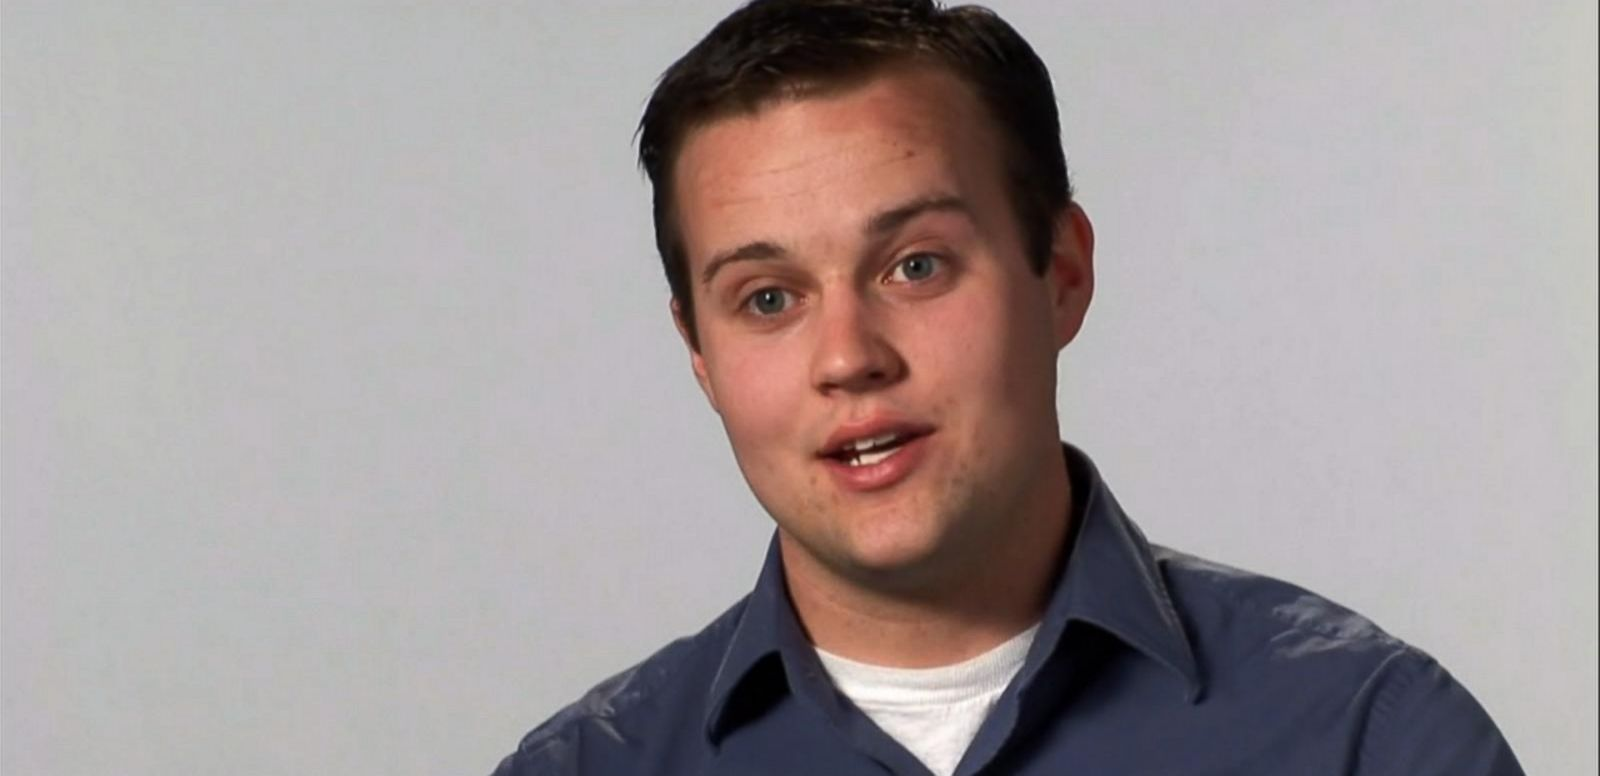 VIDEO: Family Responds to Josh Duggar Child Molestation Claims